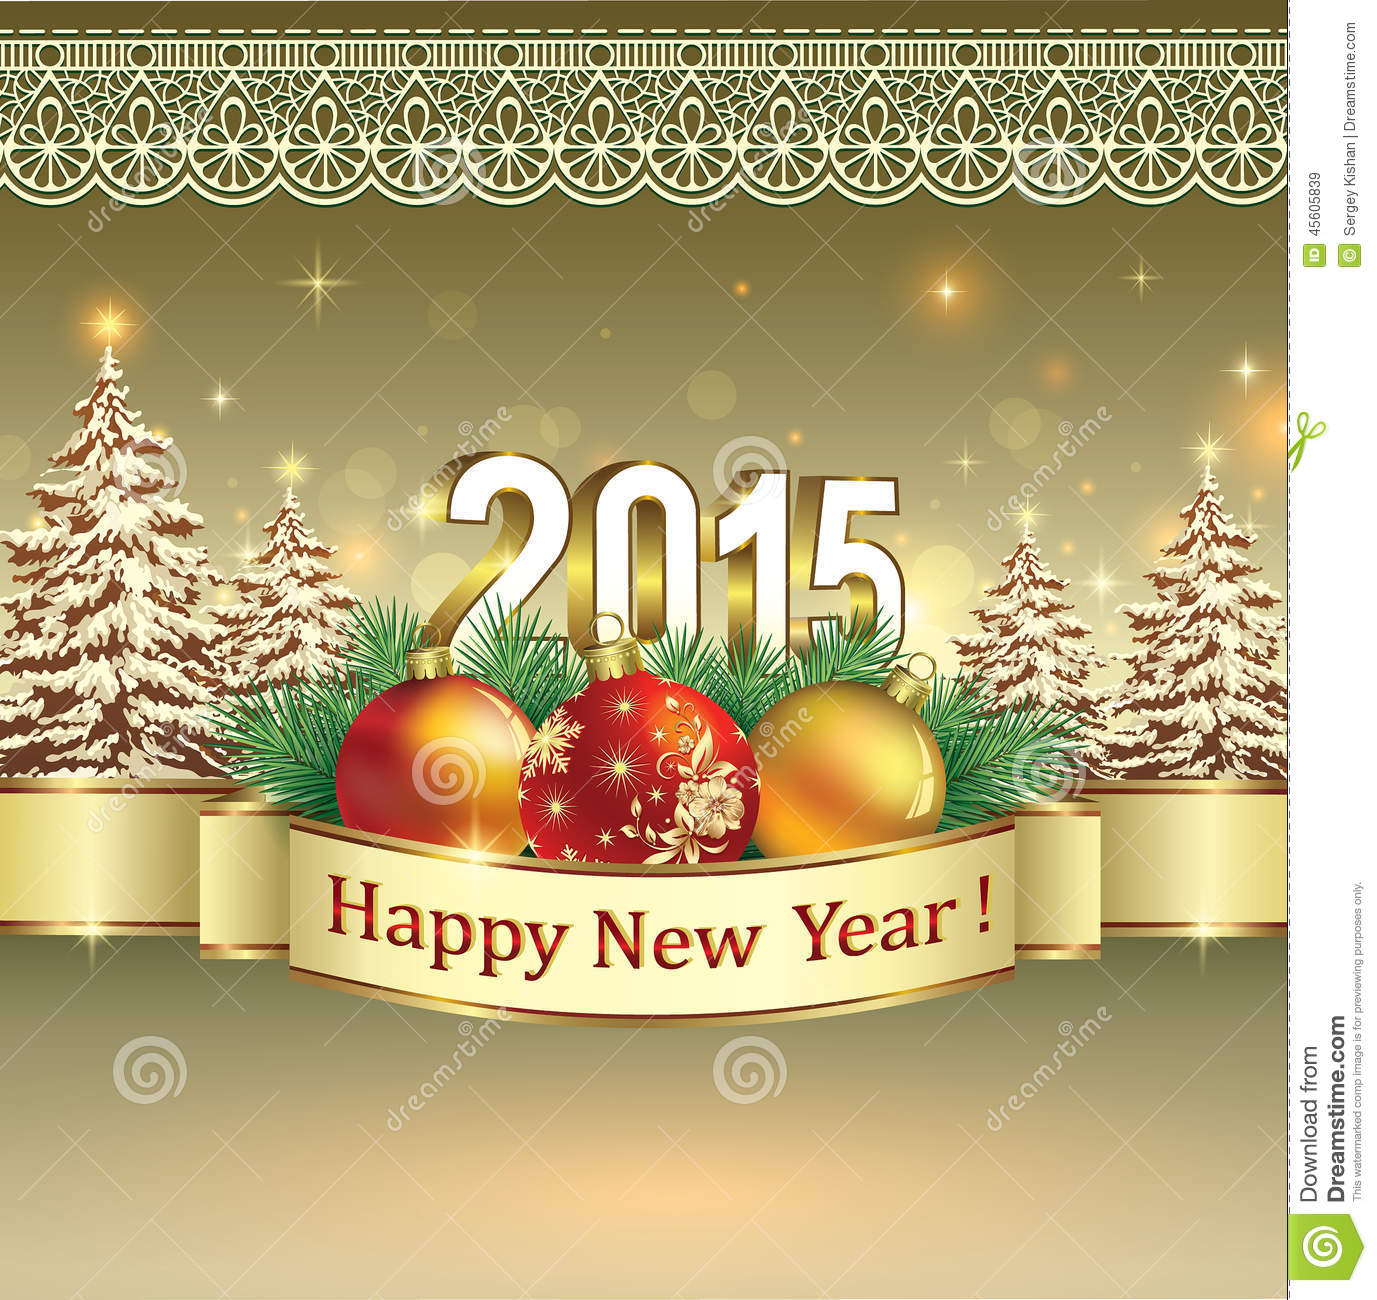 Happy New Year 2015 Celebration Greeting Card Stock Vector